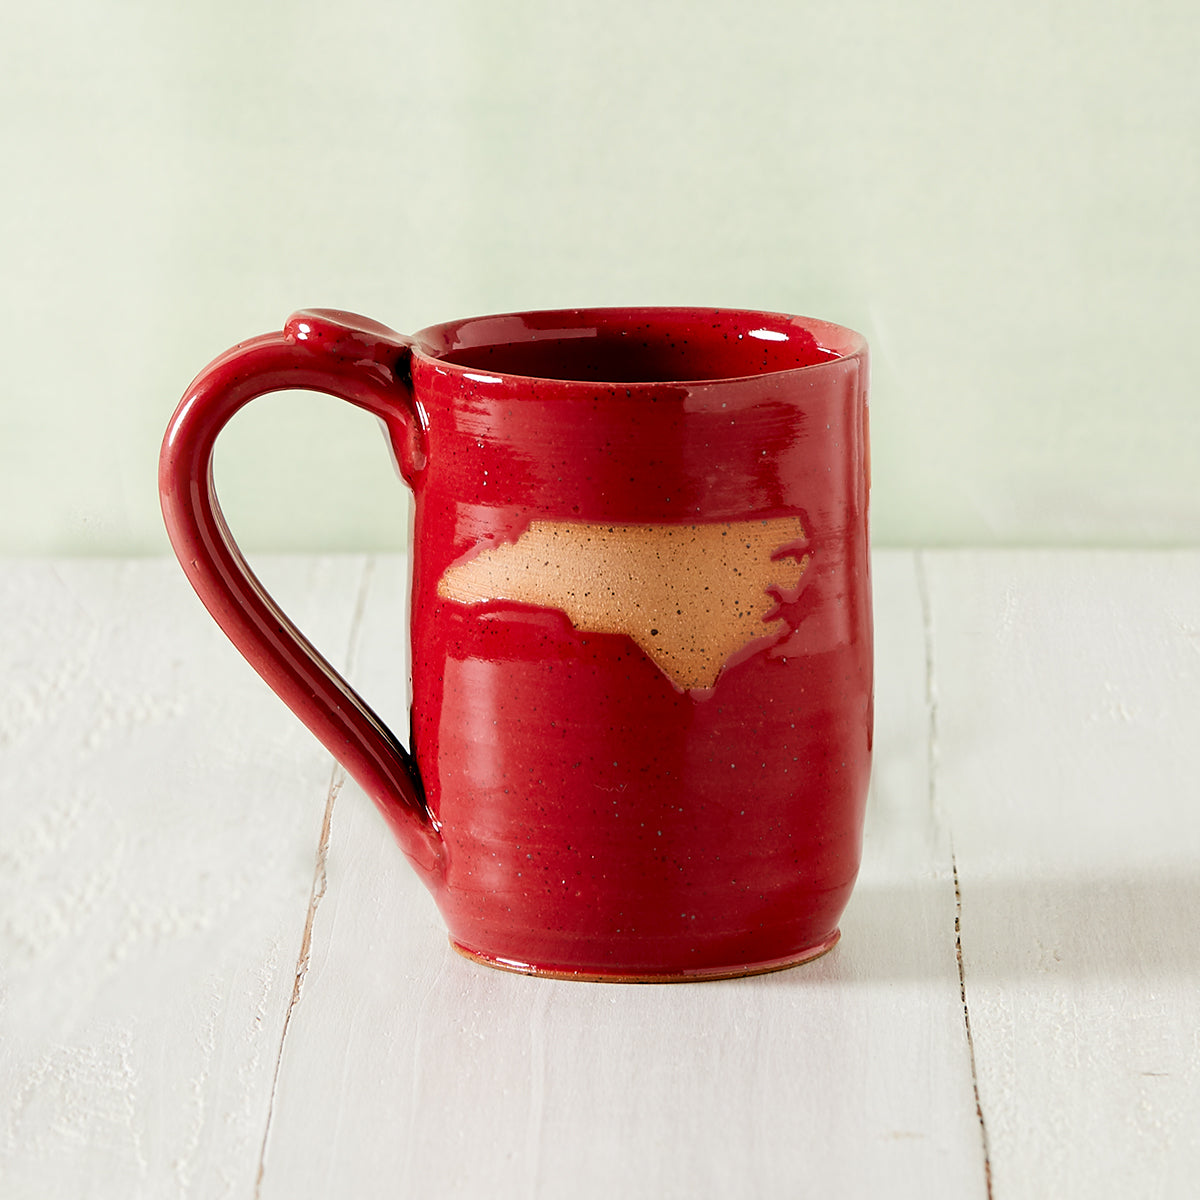 Red North Carolina Pottery Mug